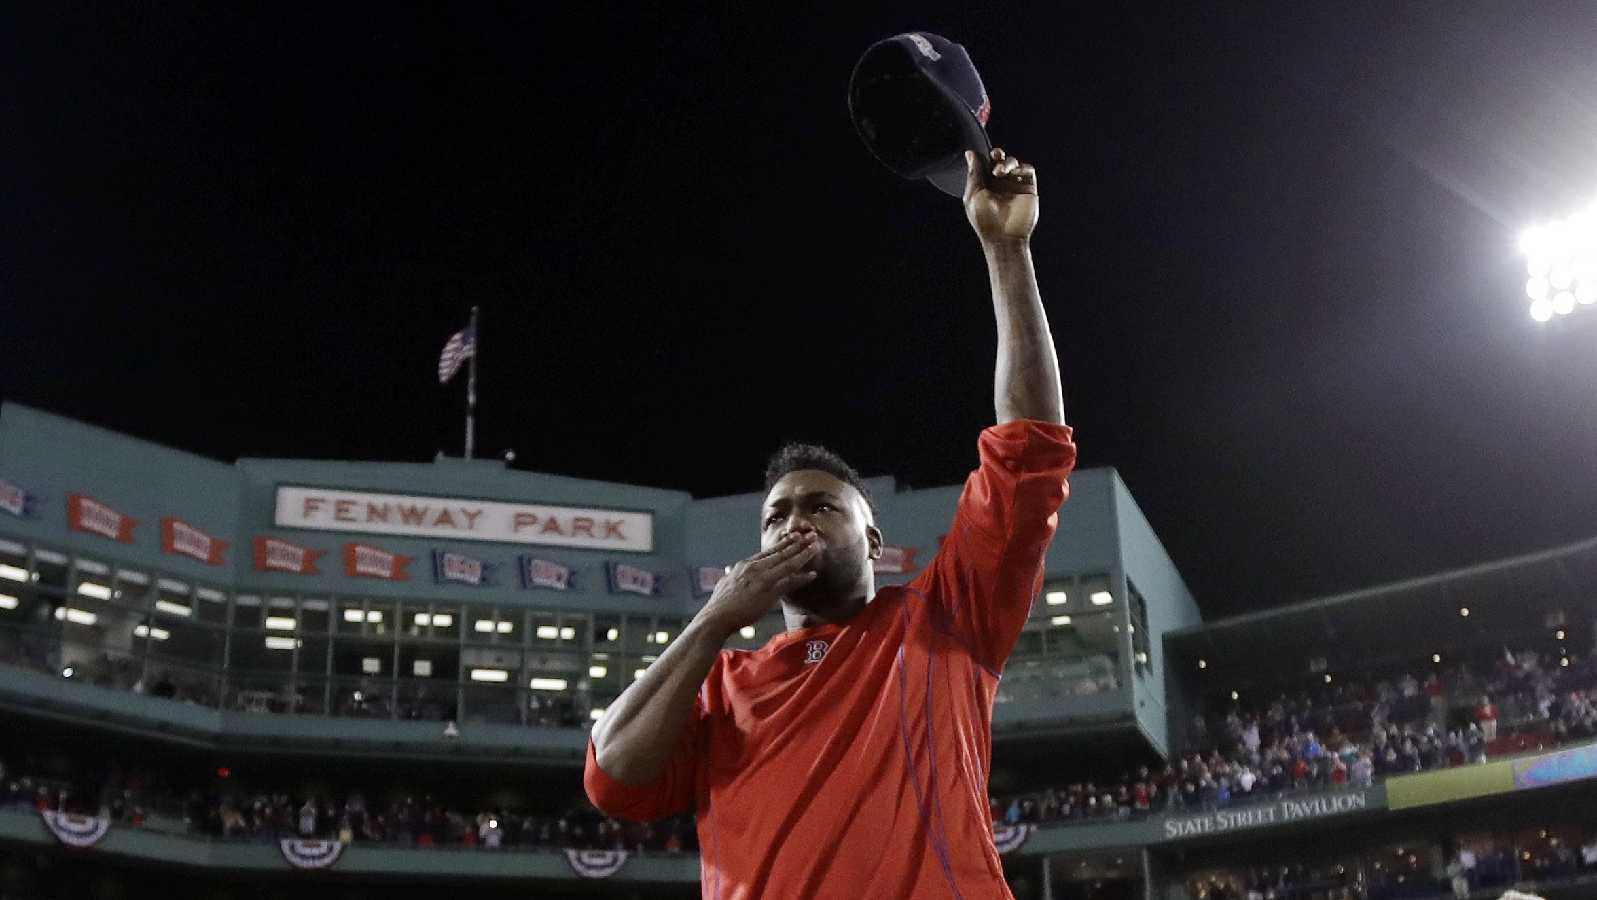 Boston Red Sox's David Ortiz blows a kiss from the mound at Fenway Park after Game 3 of baseball's American League Division Series against the Cleveland Indians, Monday, Oct. 10, 2016, in Boston. The Indians won 4-3 to sweep the Red Sox in the series. Ortiz said he will retire at the end of the season.